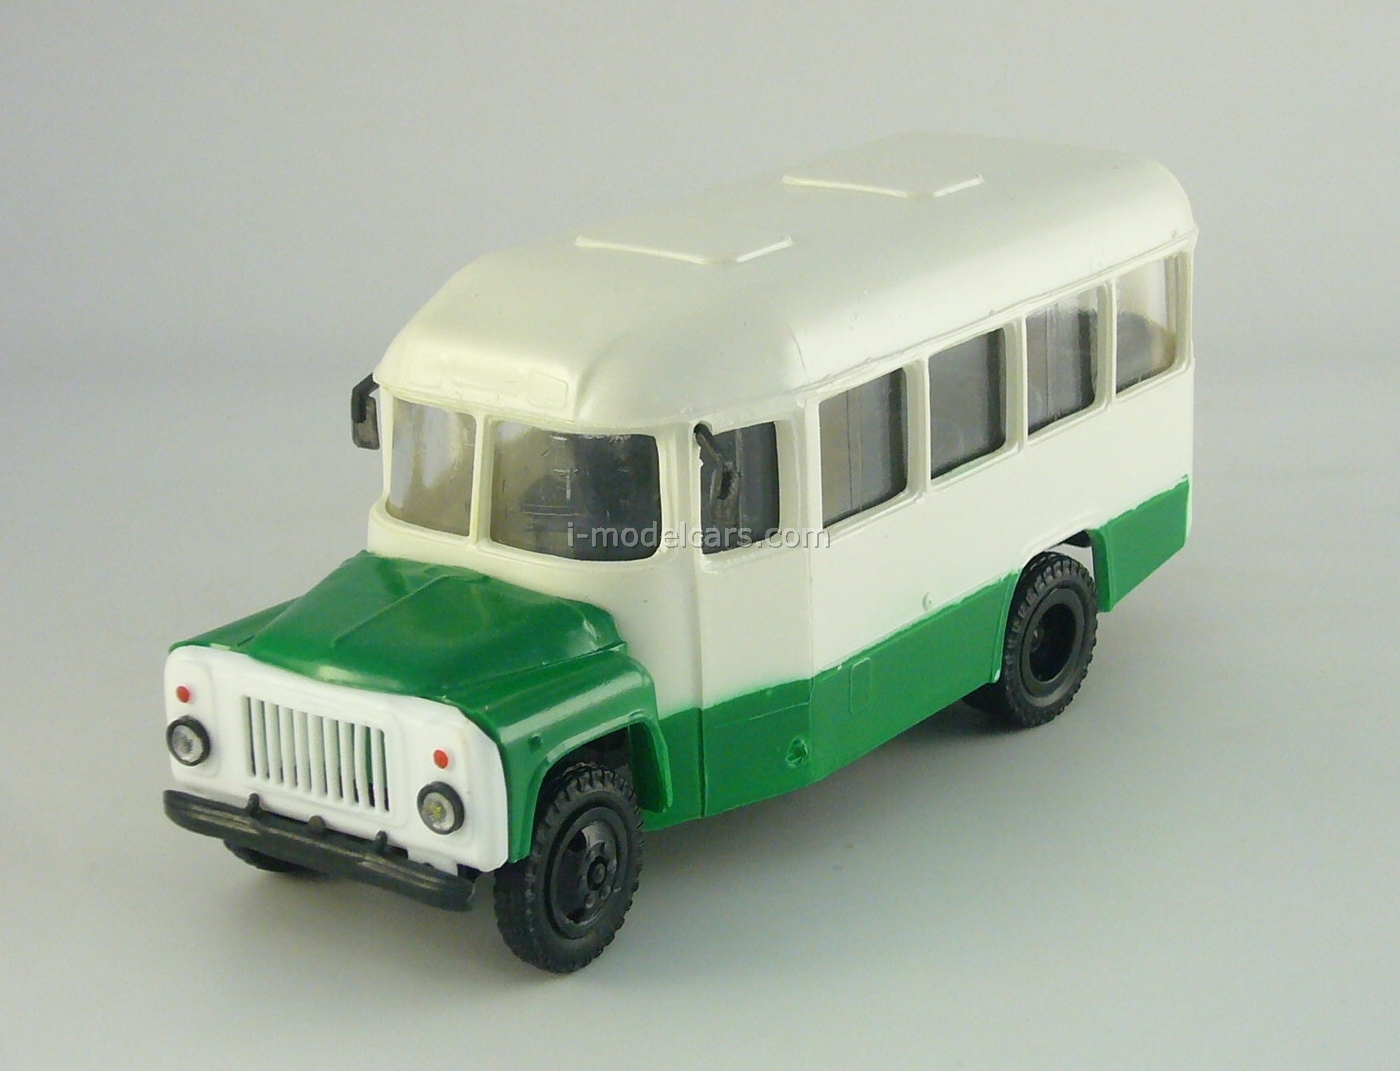 KAVZ-3270 Bus white-green Kompanion 1:43